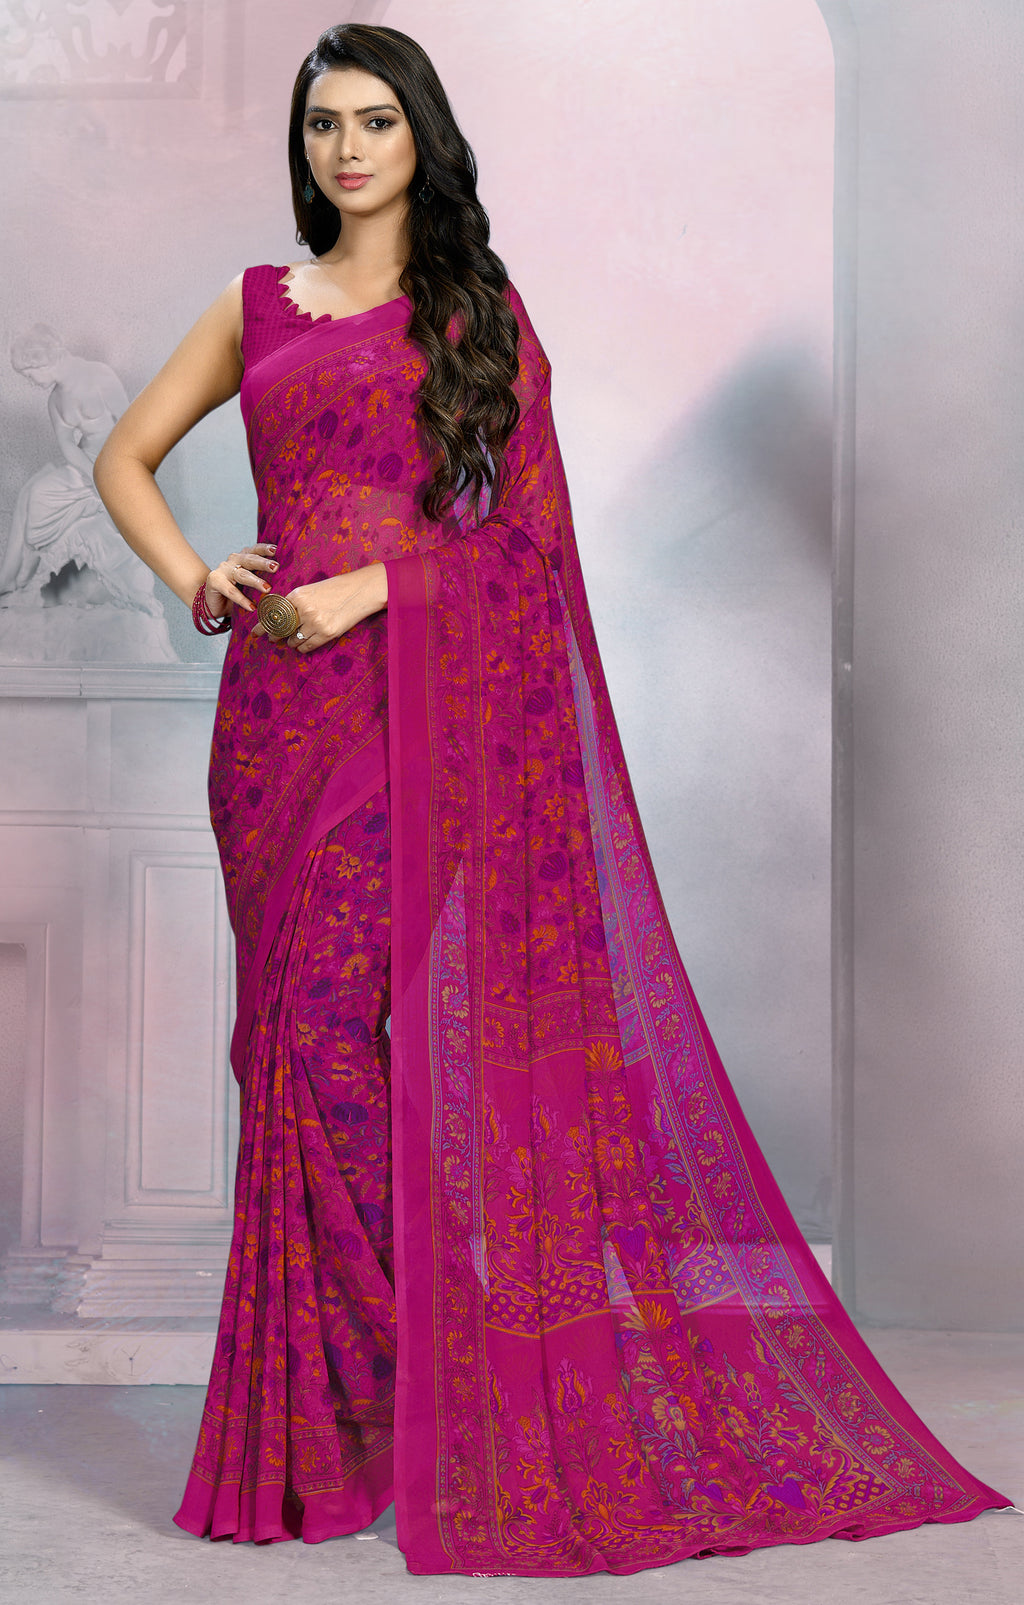 Rani Pink Color Georgette Daily Wear Sarees NYF-8518